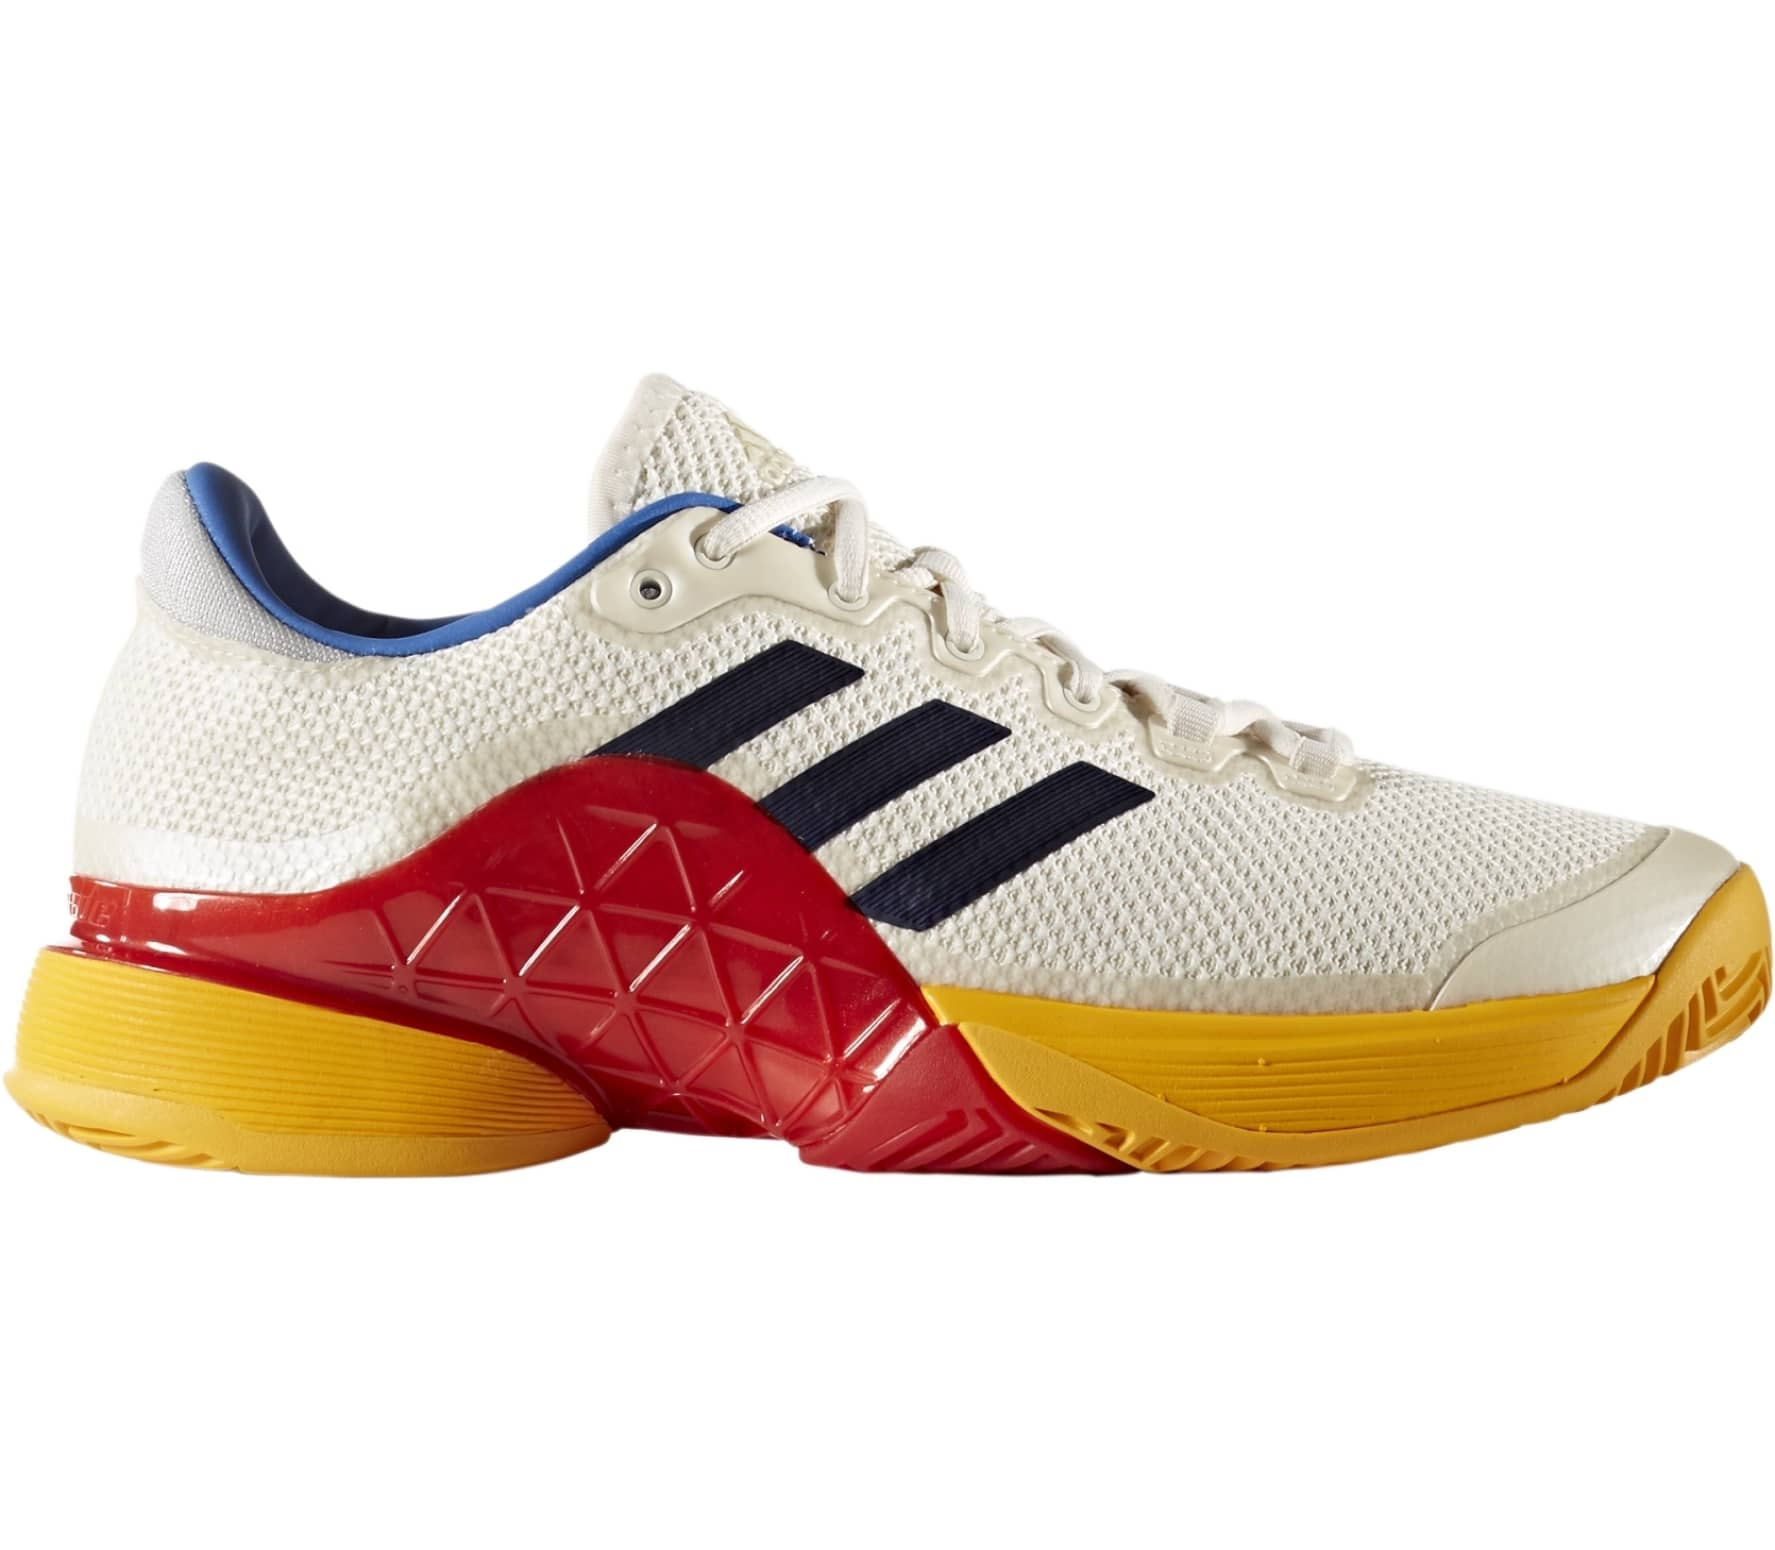 buy popular 2c3cb 09a86 Adidas - Barricade 2017 Pharrell Williams Heren Tennis schoen (witblauw)